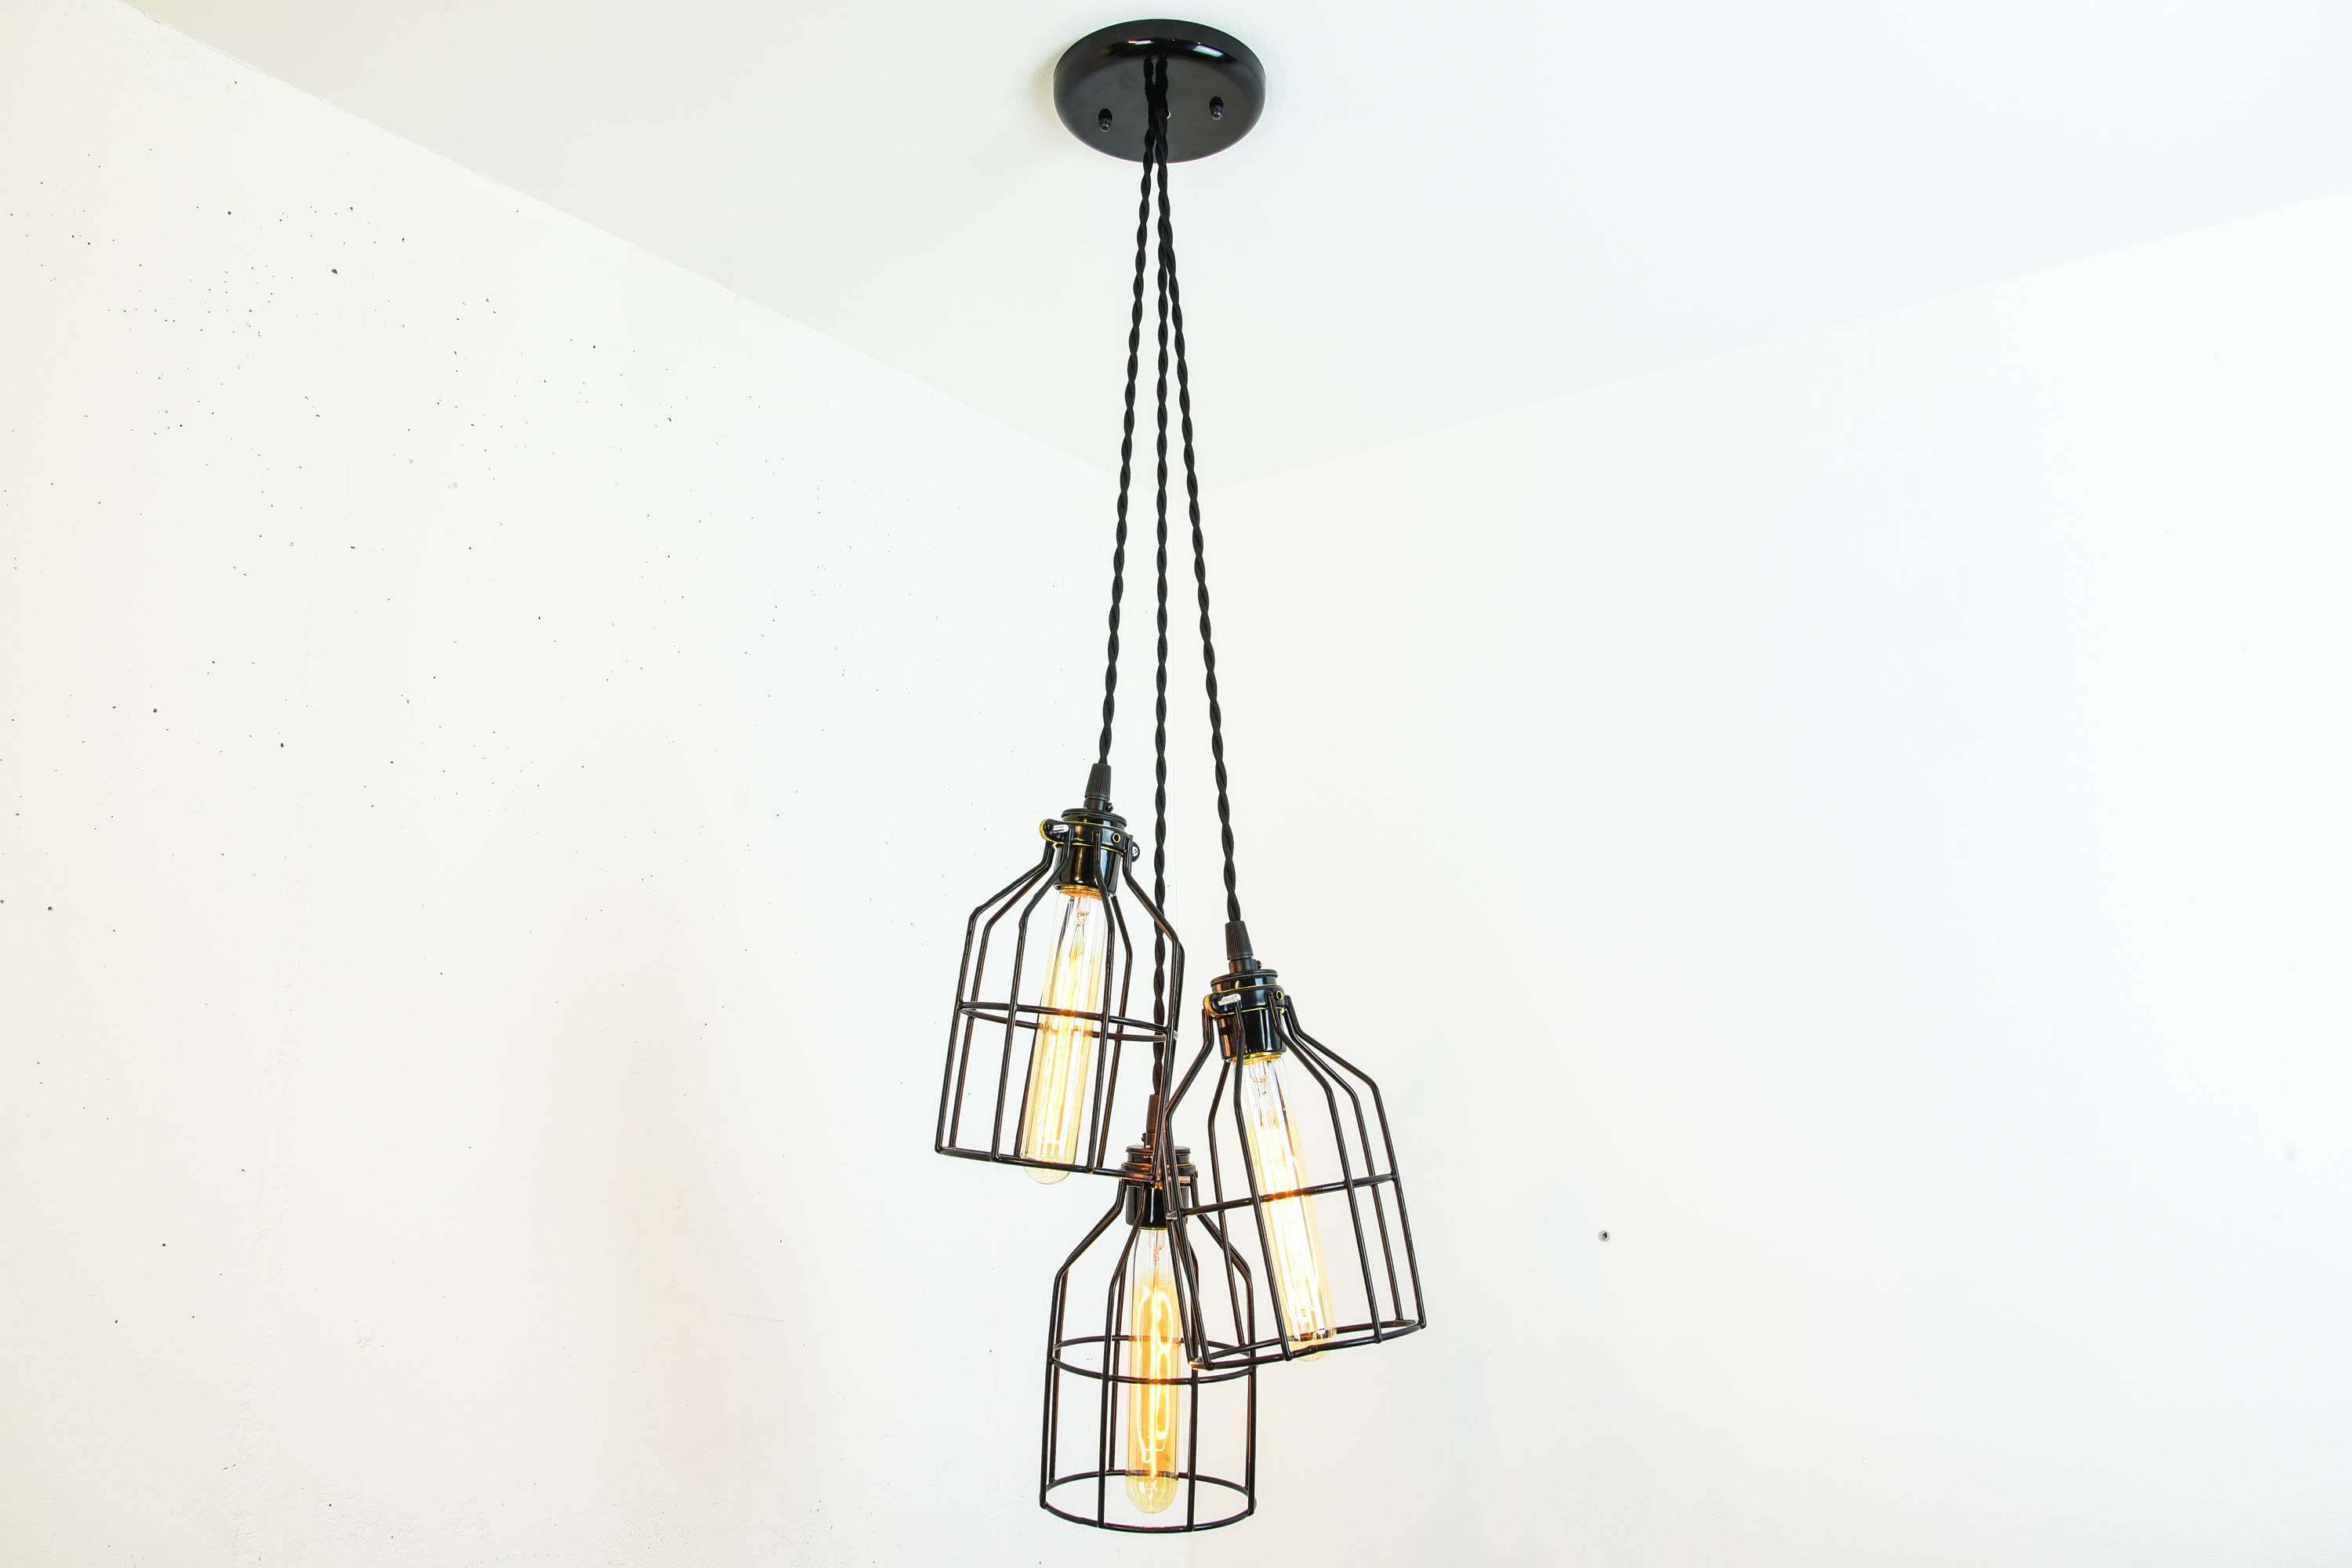 industrial dp light finish ceiling mini kimball com steel home design house lights galvanized improvement amazon pendant